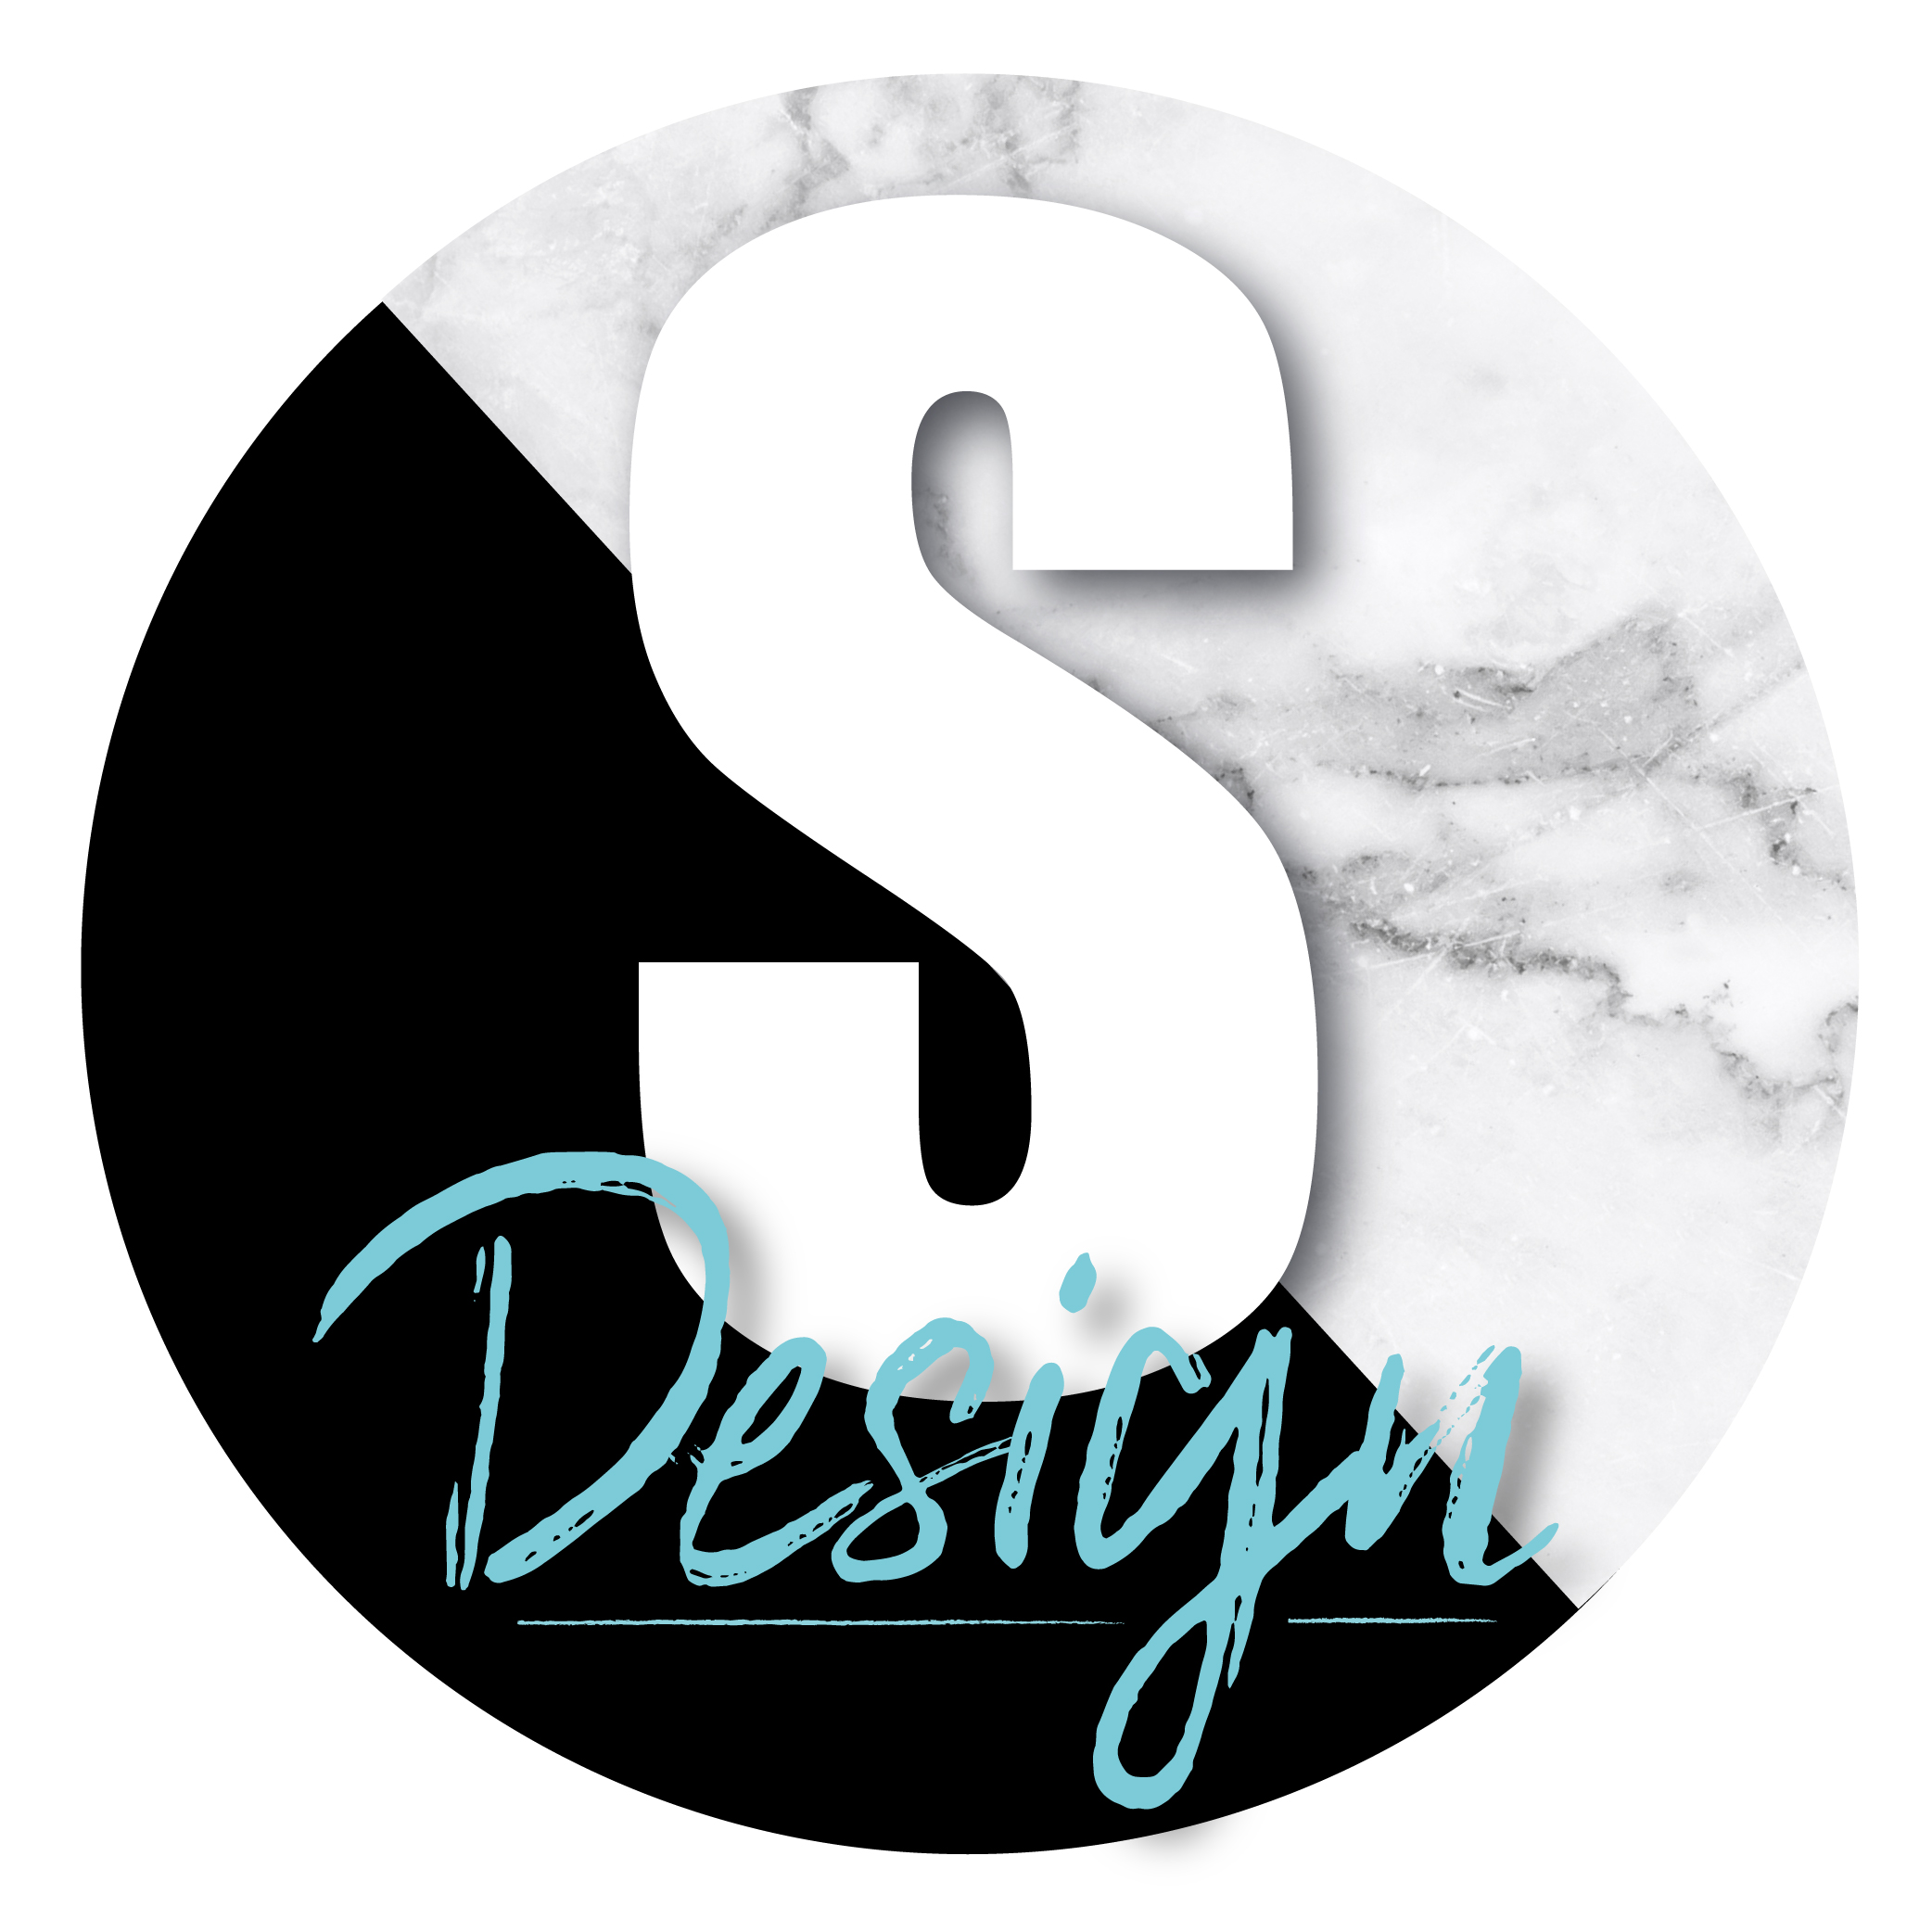 ShutterMeShort Design - Let us help you brand your business through beautiful graphics and logos. Whether you are creating your first website or creating a social media presence, we are here to help!